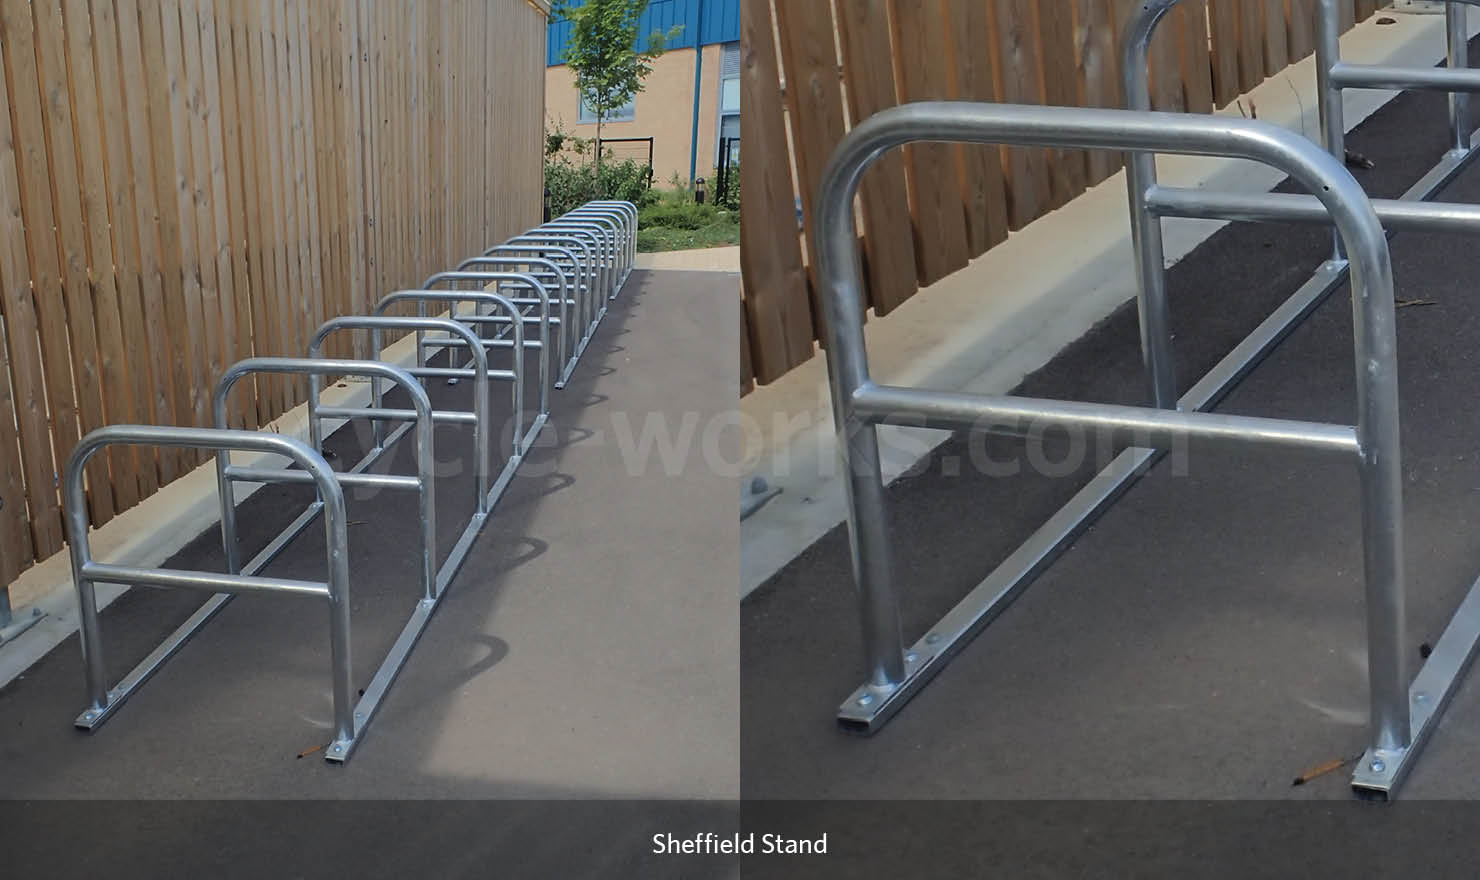 Sheffield Bike Stand